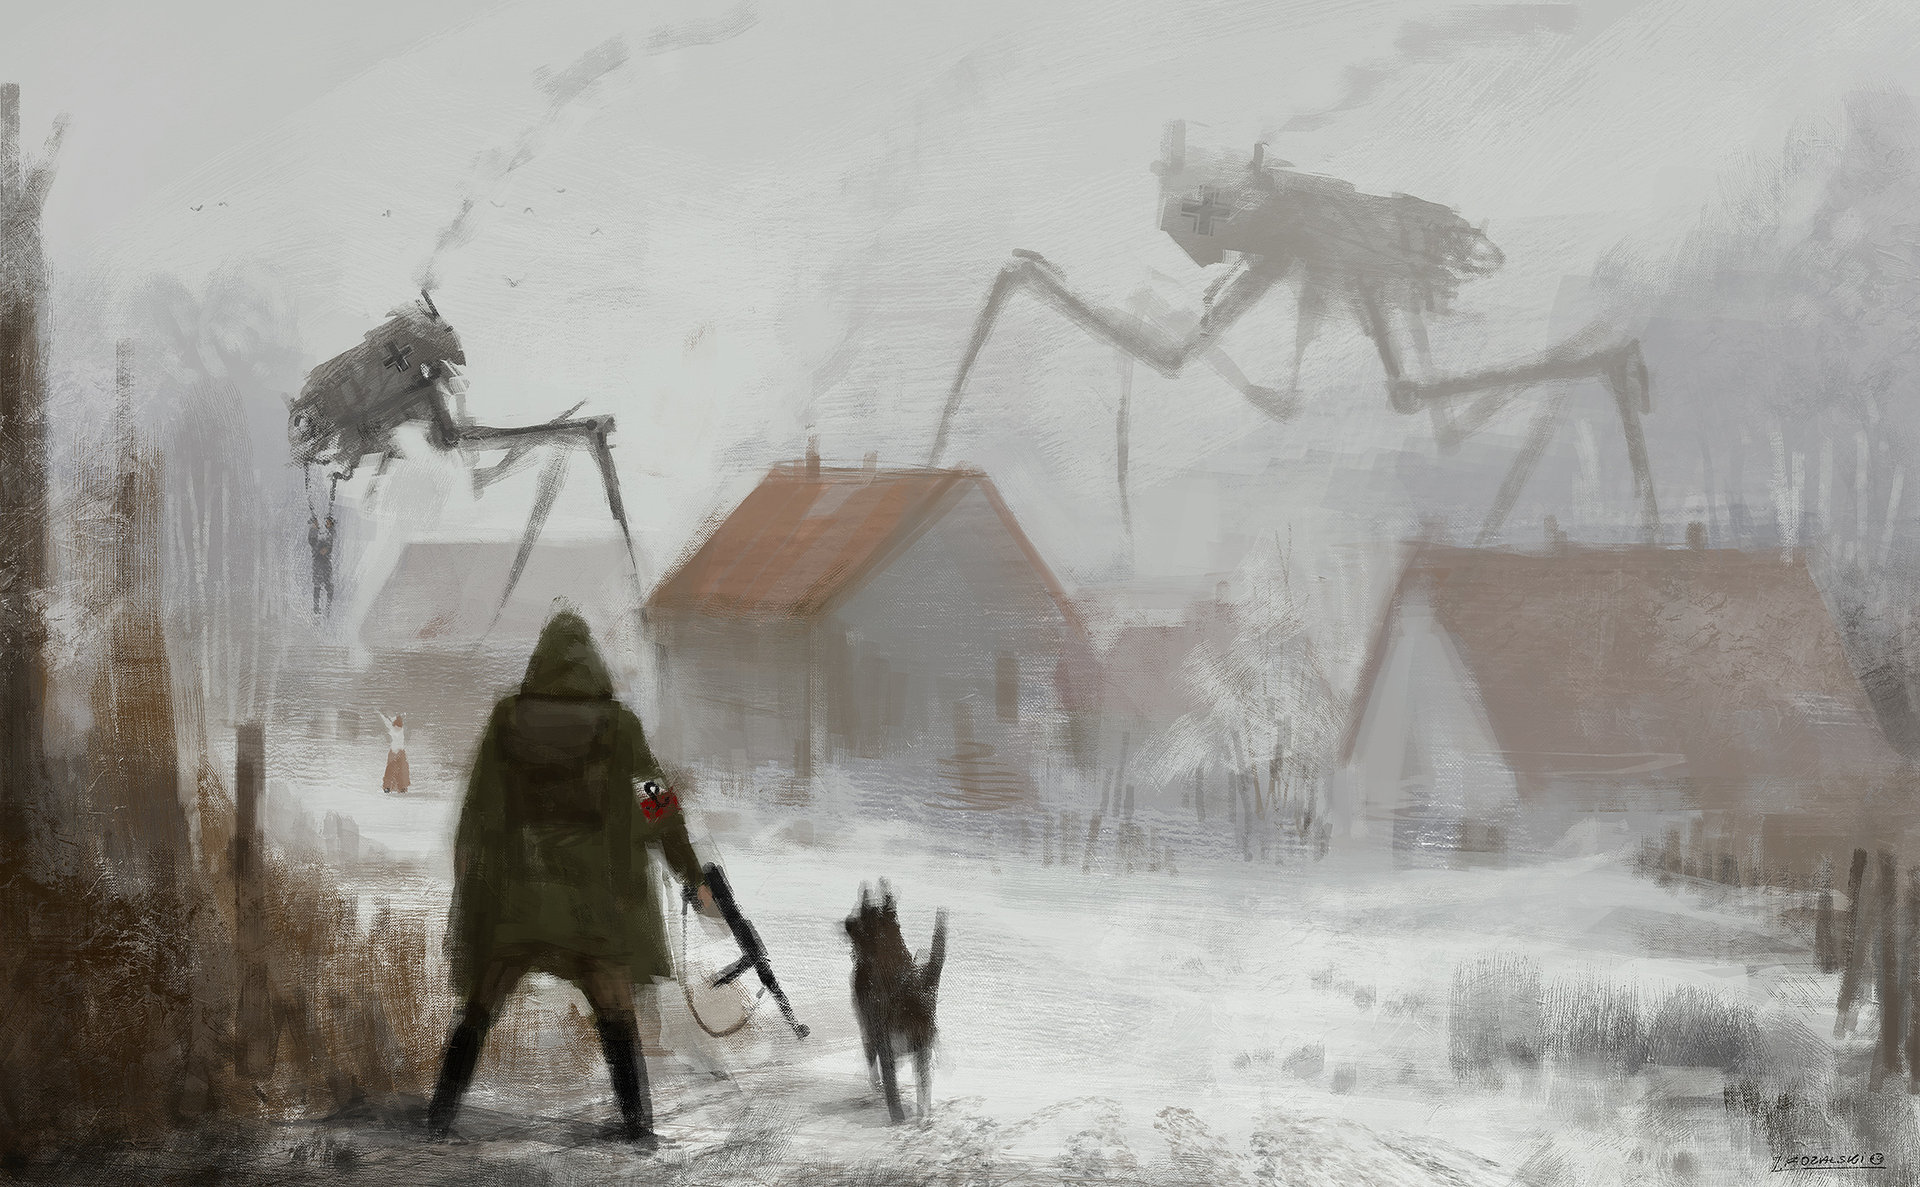 Jakub_Rozalski_-_1920 big spider on the roof